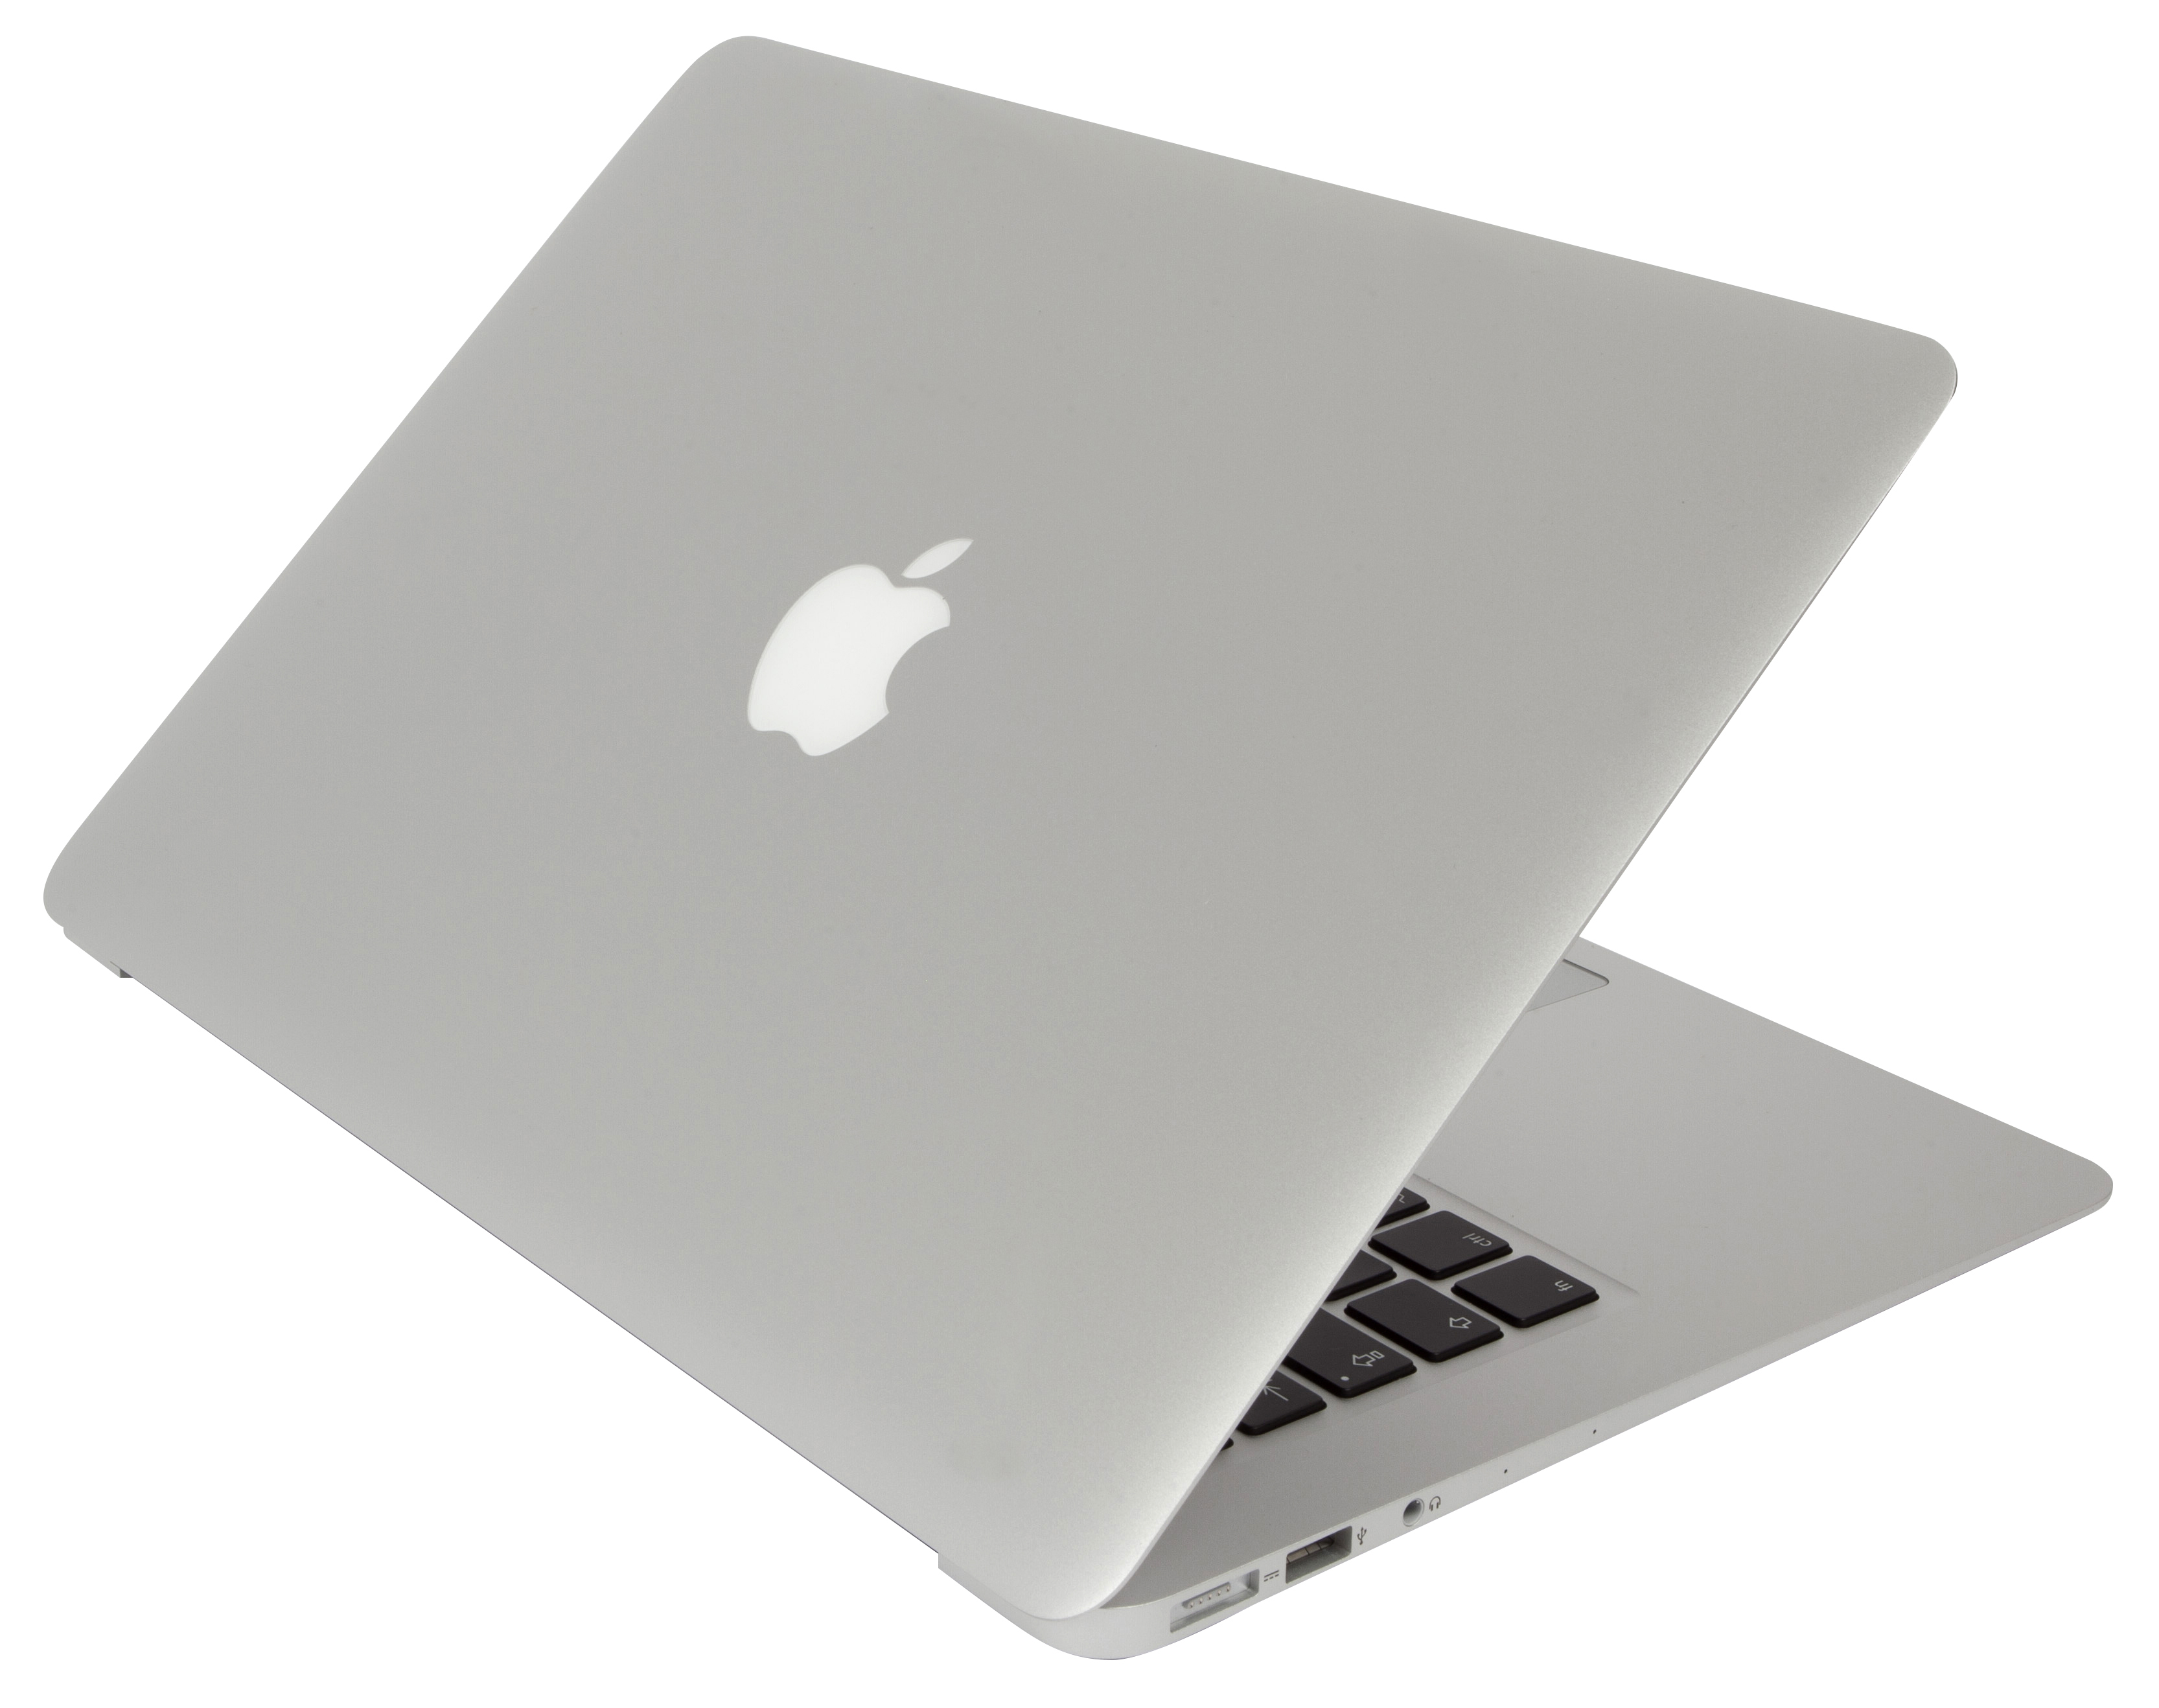 MMGF2 – MACBOOK AIR 2016 CŨ – 13 INCH - 128GB – CORE i5 - BẠC - NEW 99%